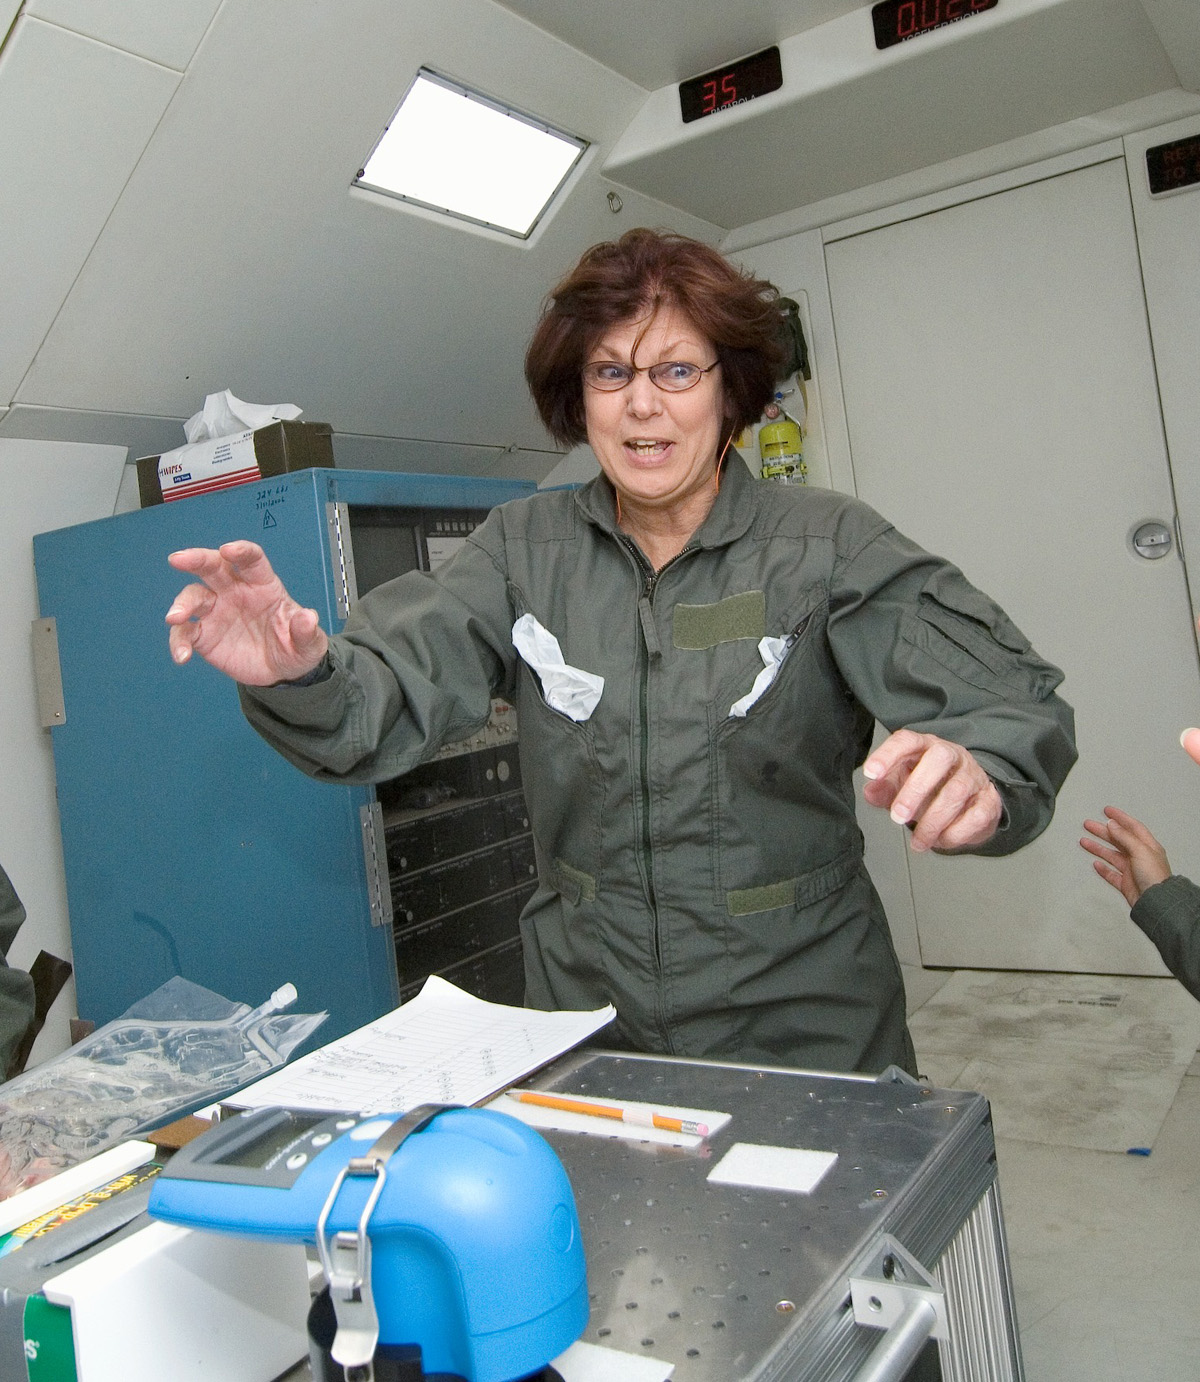 """University of Utah chemist Lorraine Siperko experiences weightlessness during a flight aboard a NASA """"vomit comet"""" aircraft. Siperko made several such flights to test a new system designed to monitor drinking water quality aboard spacecraft. The system includes a commercially available color sensor (blue device in foreground) that checks the level of disinfectant in drinking water. The water quality monitoring system was delivered to the International Space Station in August for six months of tests."""